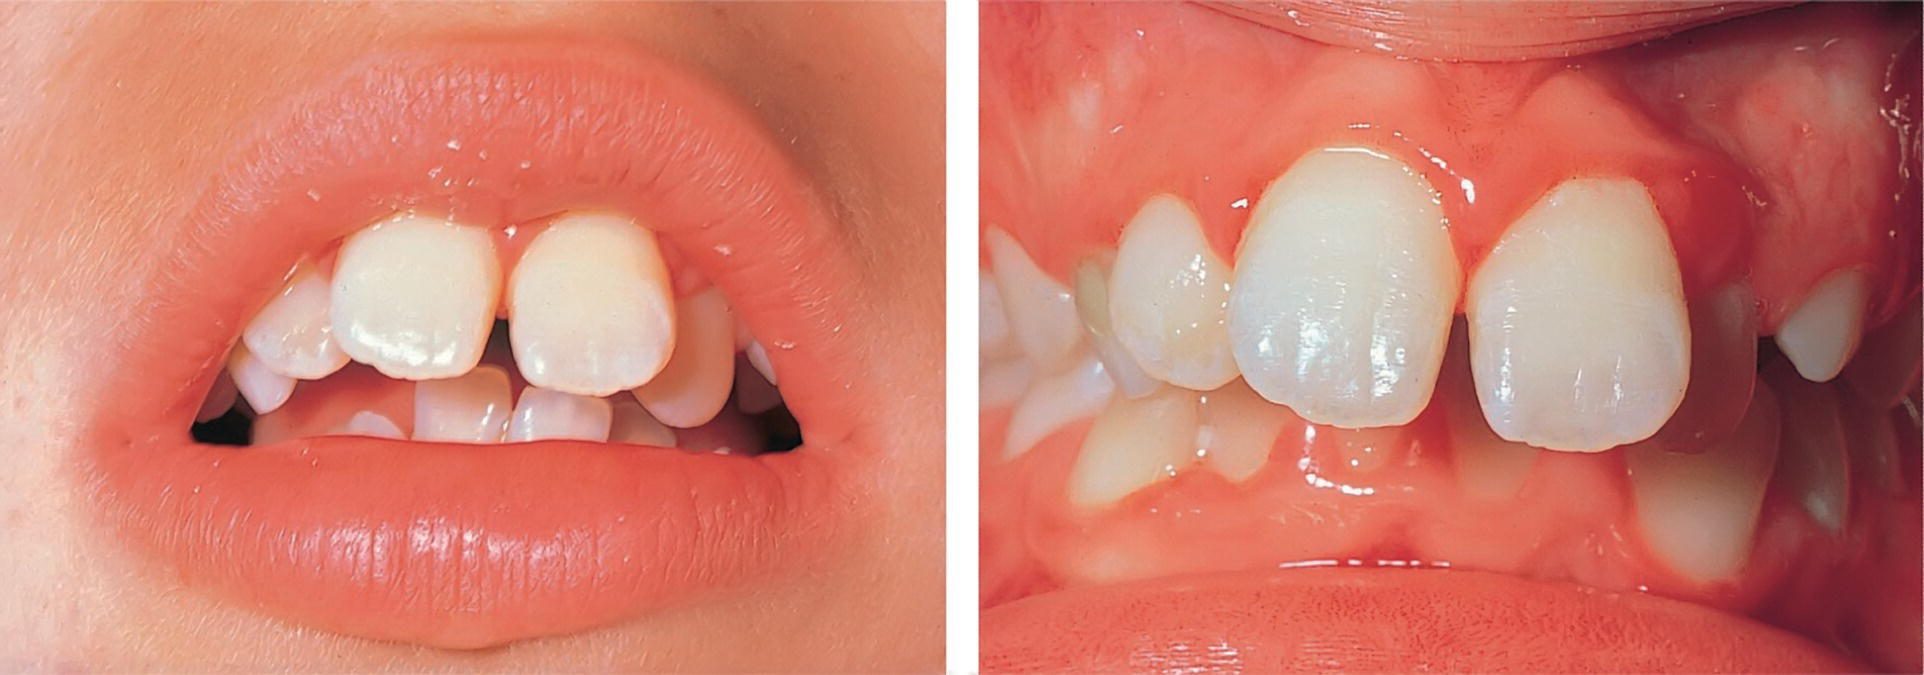 2 Photos of a patient's mouth (left) and bite (right) displaying chronic gingivitis associated with mouth breathing.